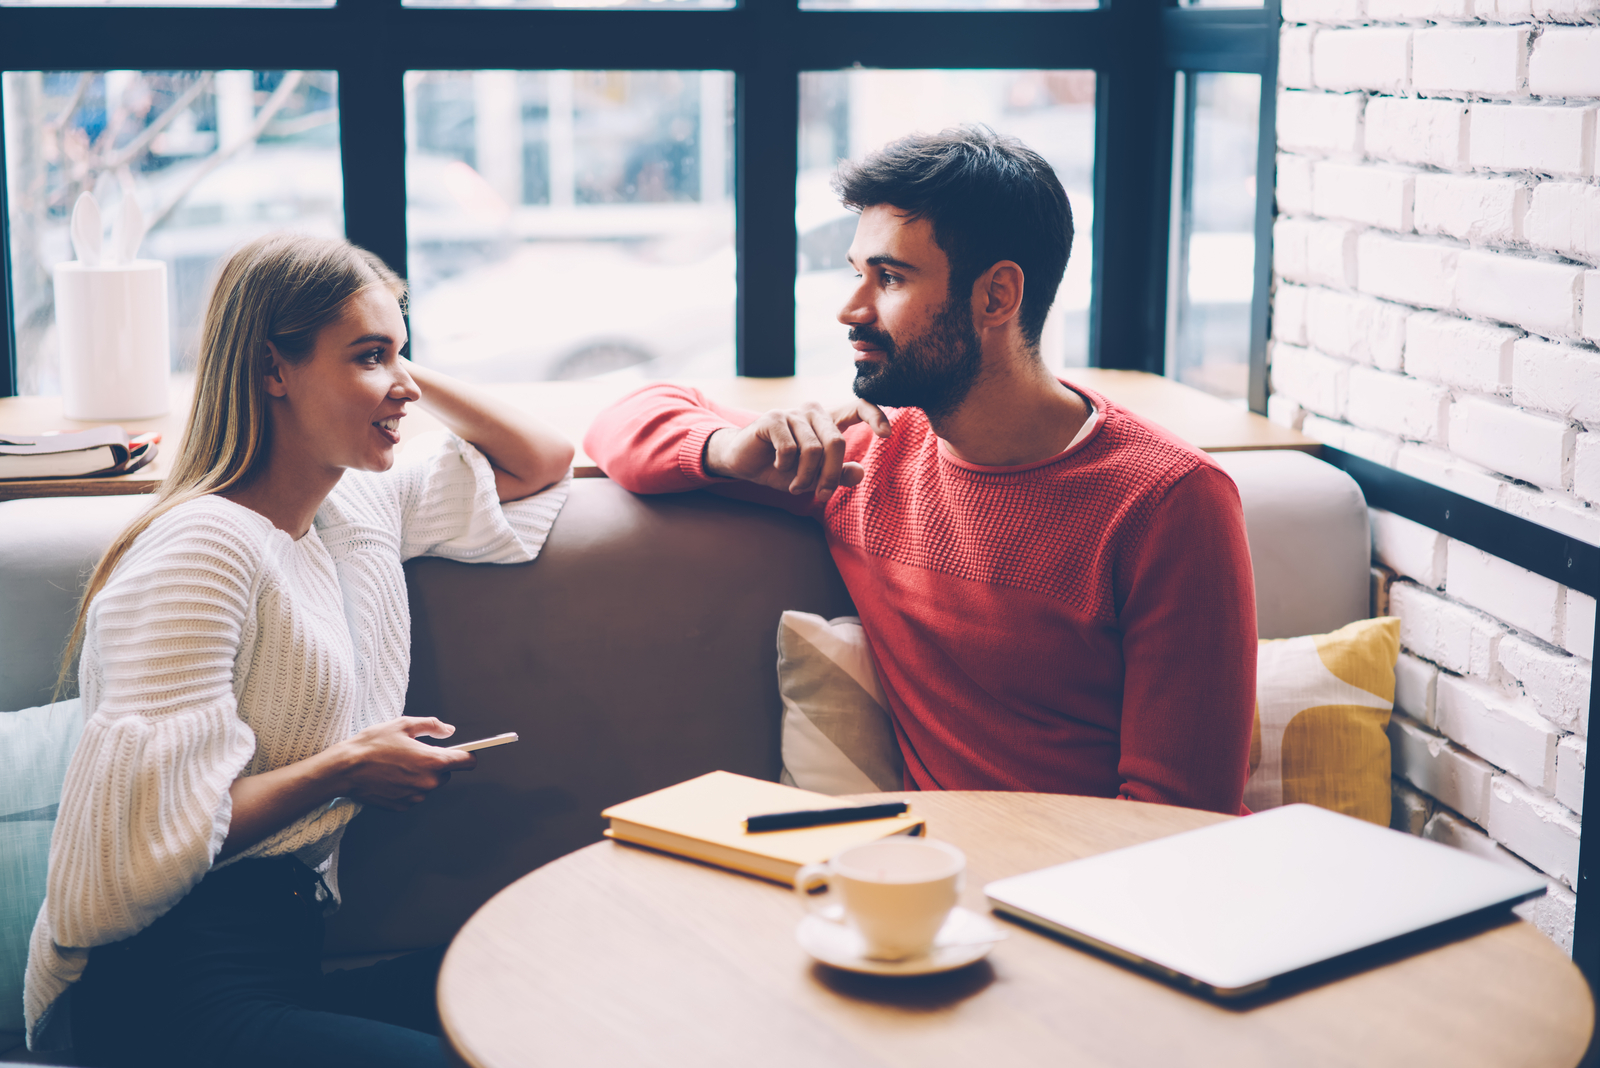 a man and a woman sit in a cafe and talk